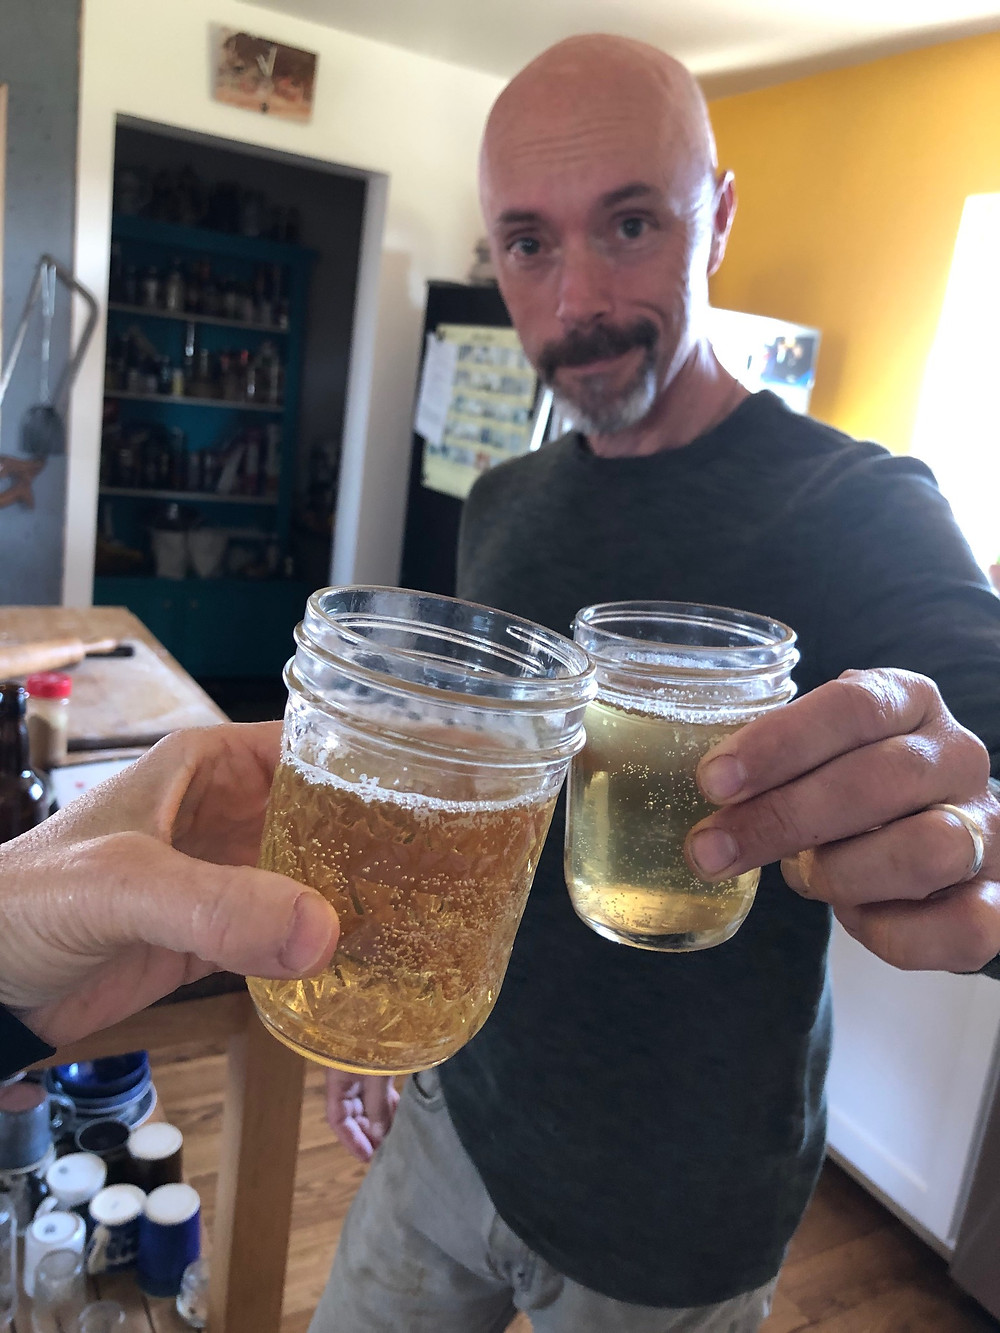 The author toasts with a glass of hard cider.